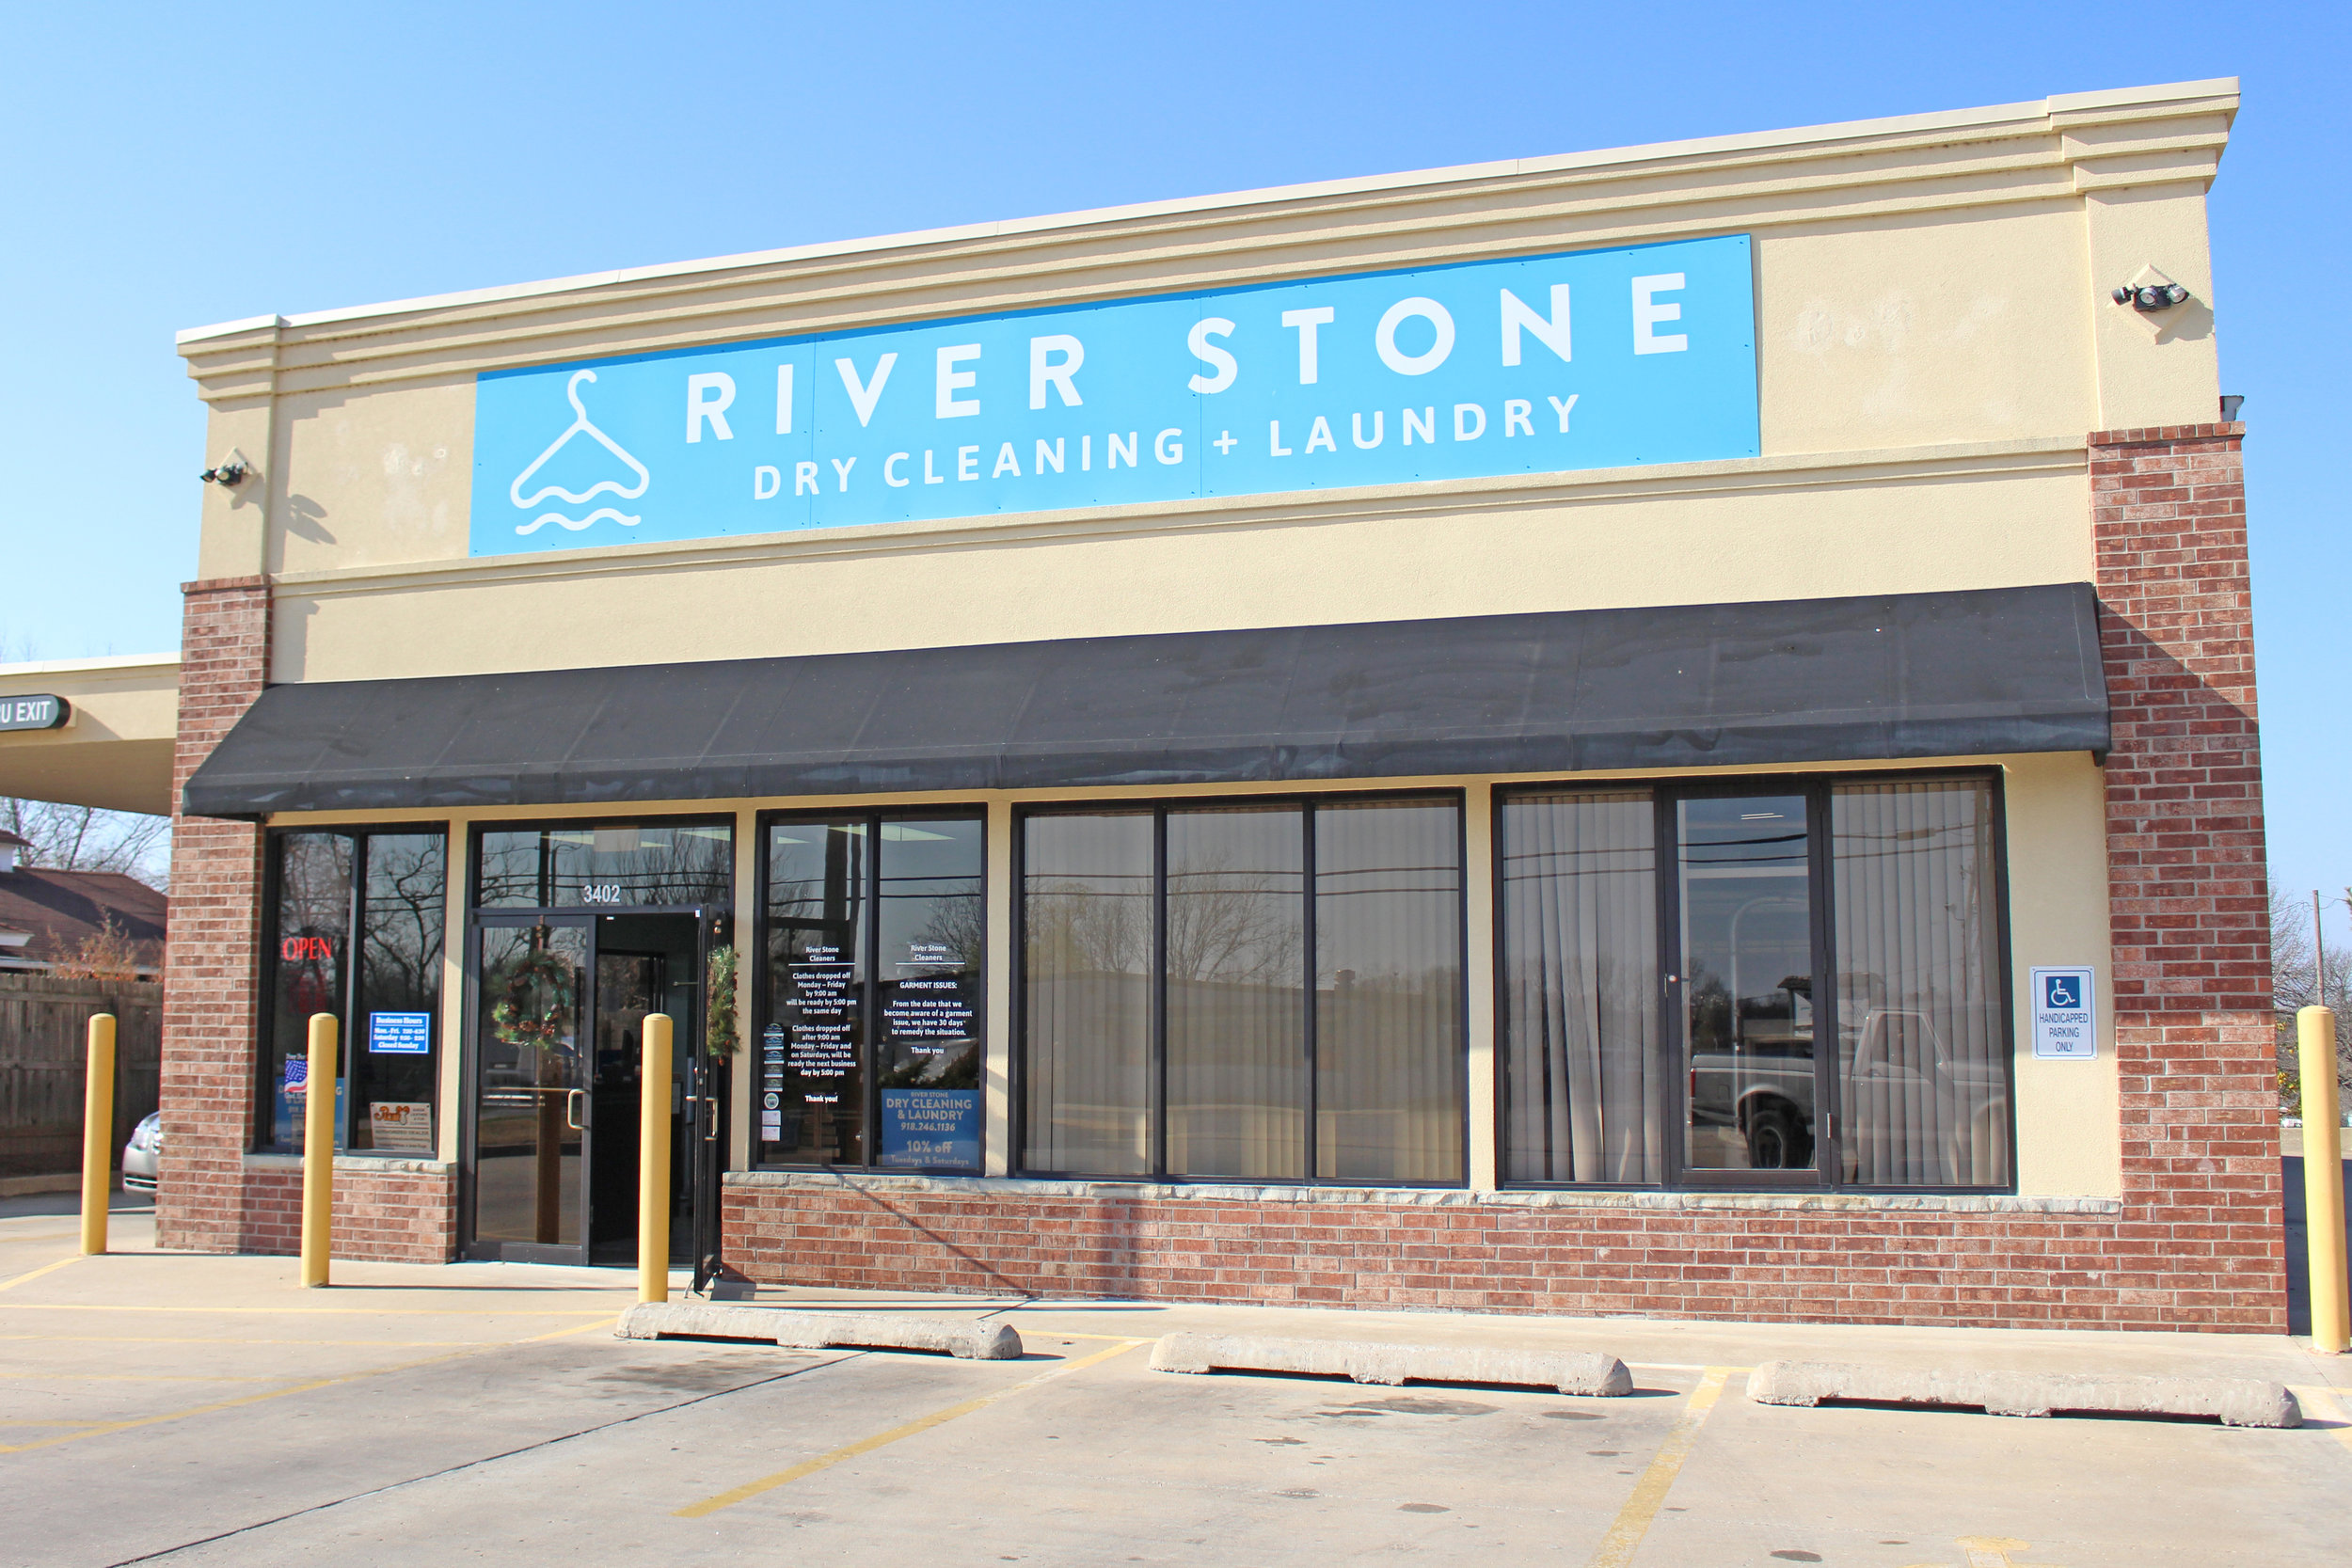 river stone dry cleaners & laundry - prattville 3402 south 113th west avenue